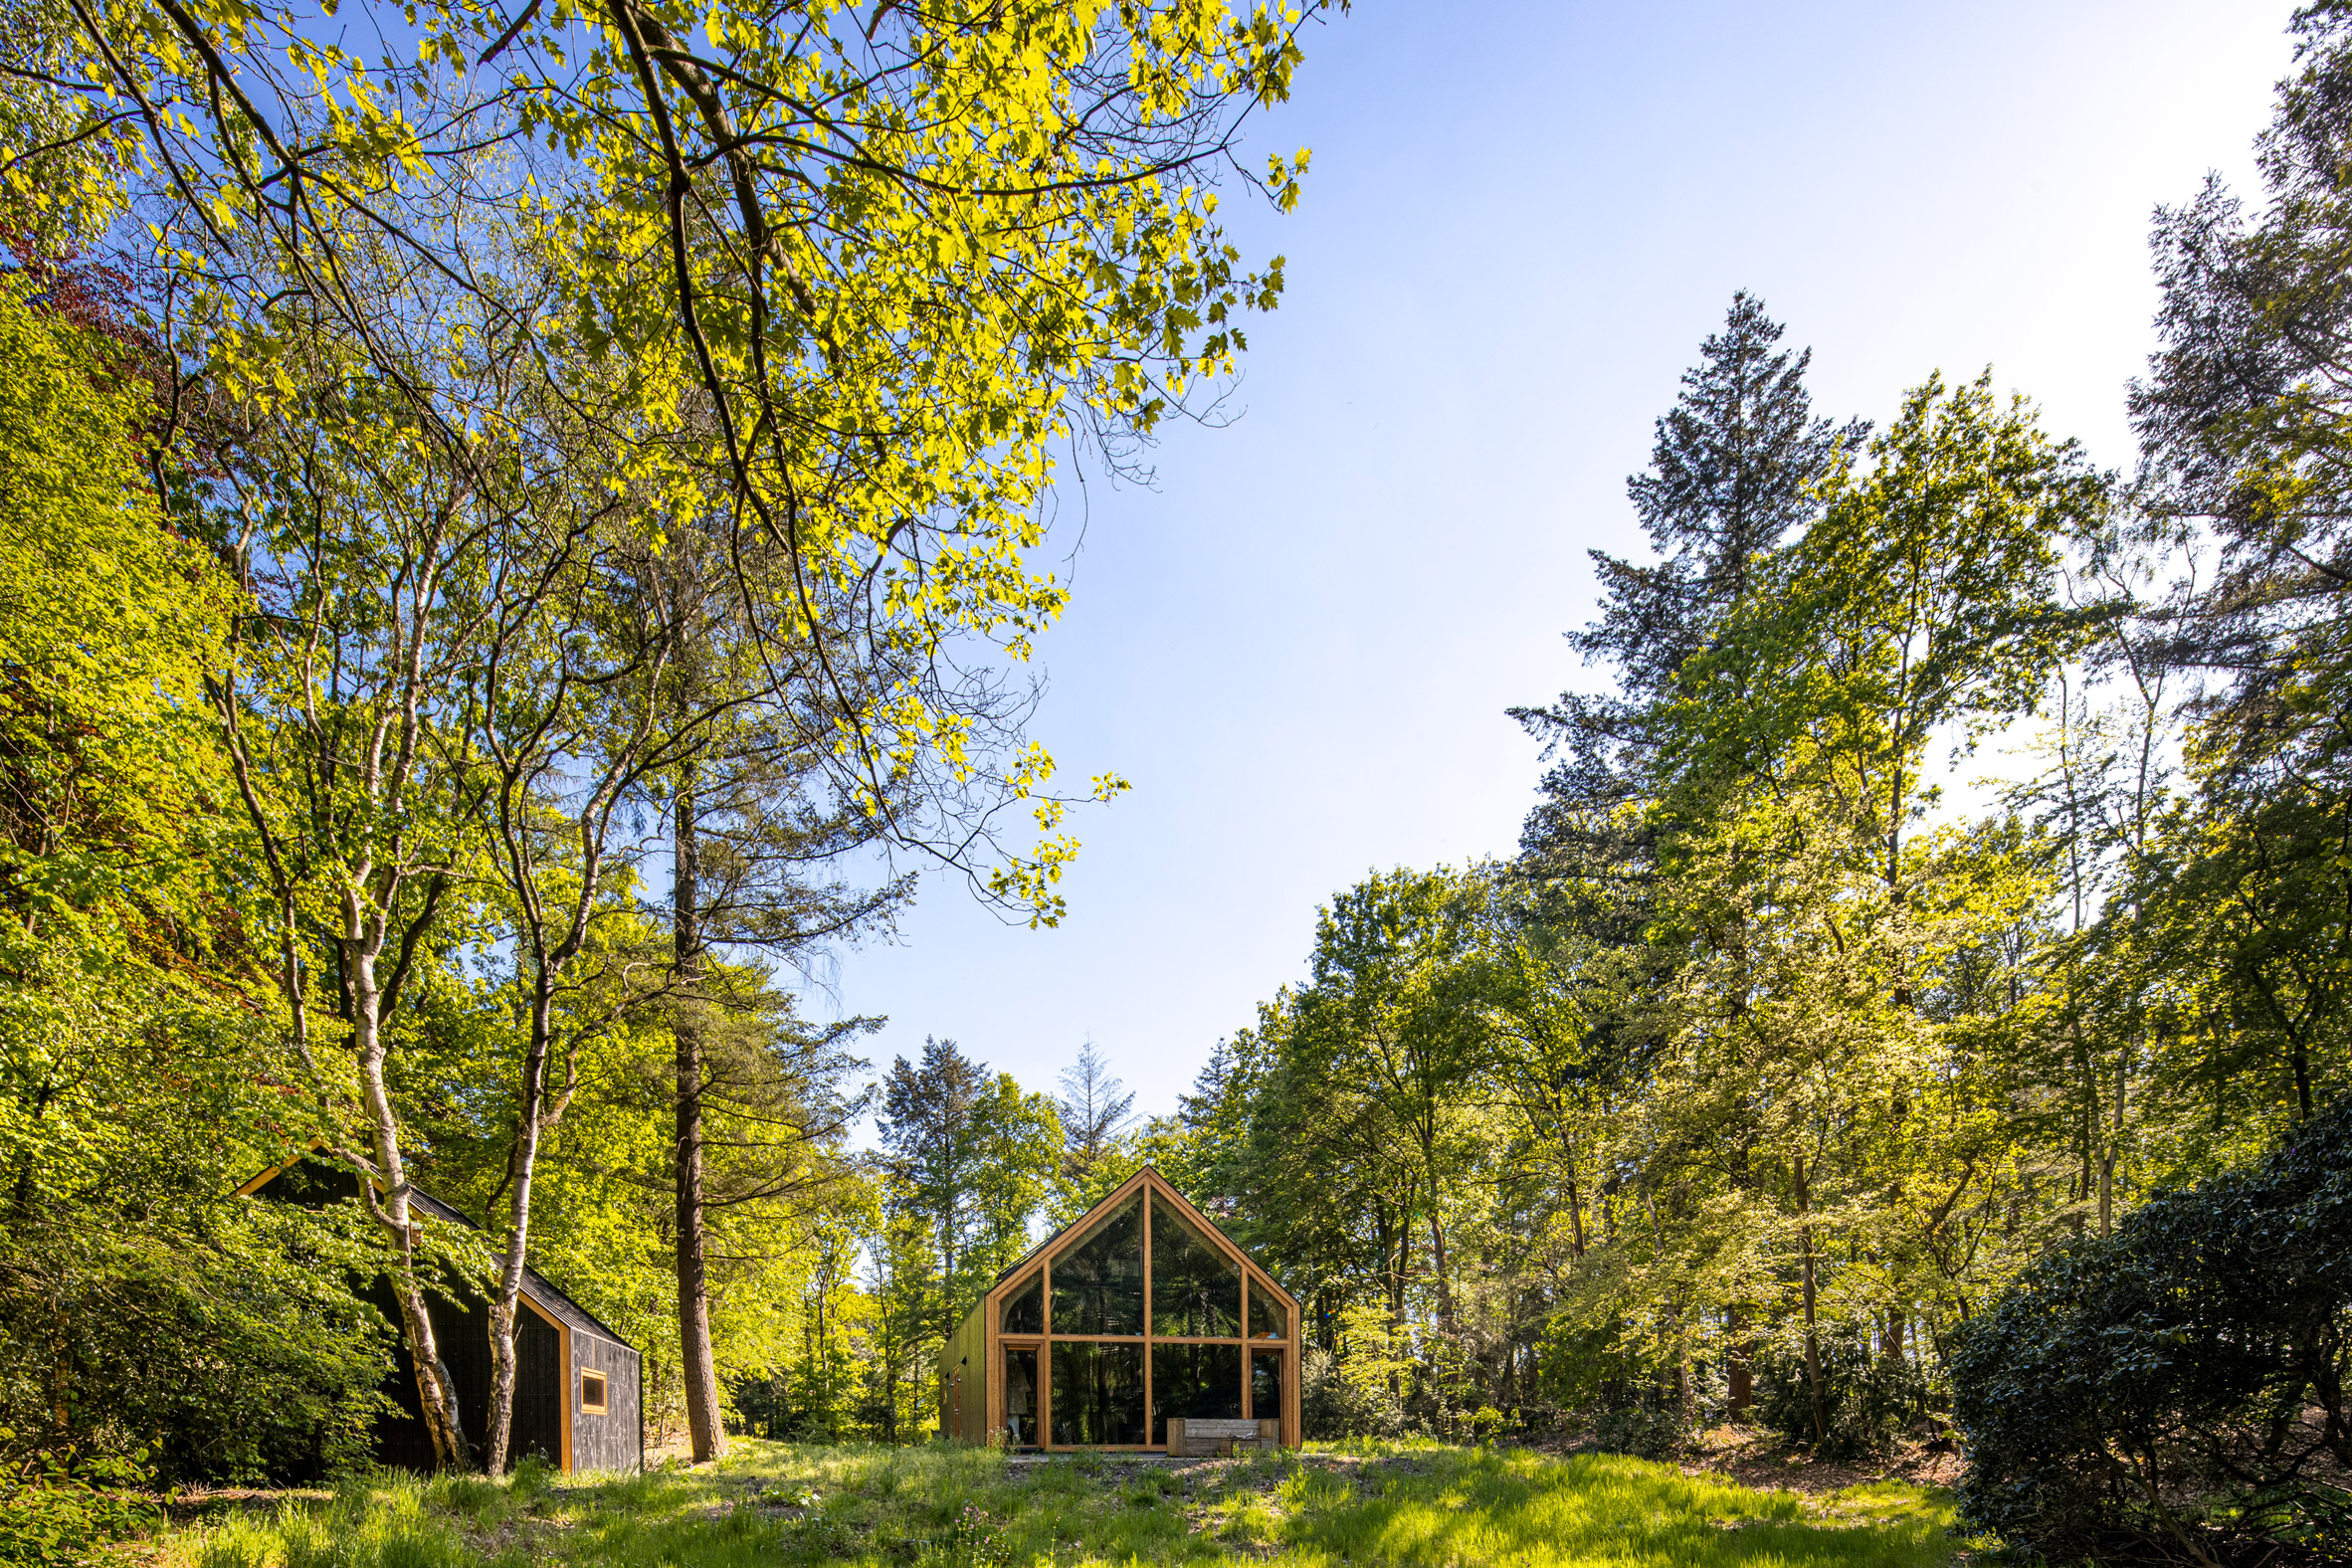 A wooden cabin with glazed walls in a forest opening